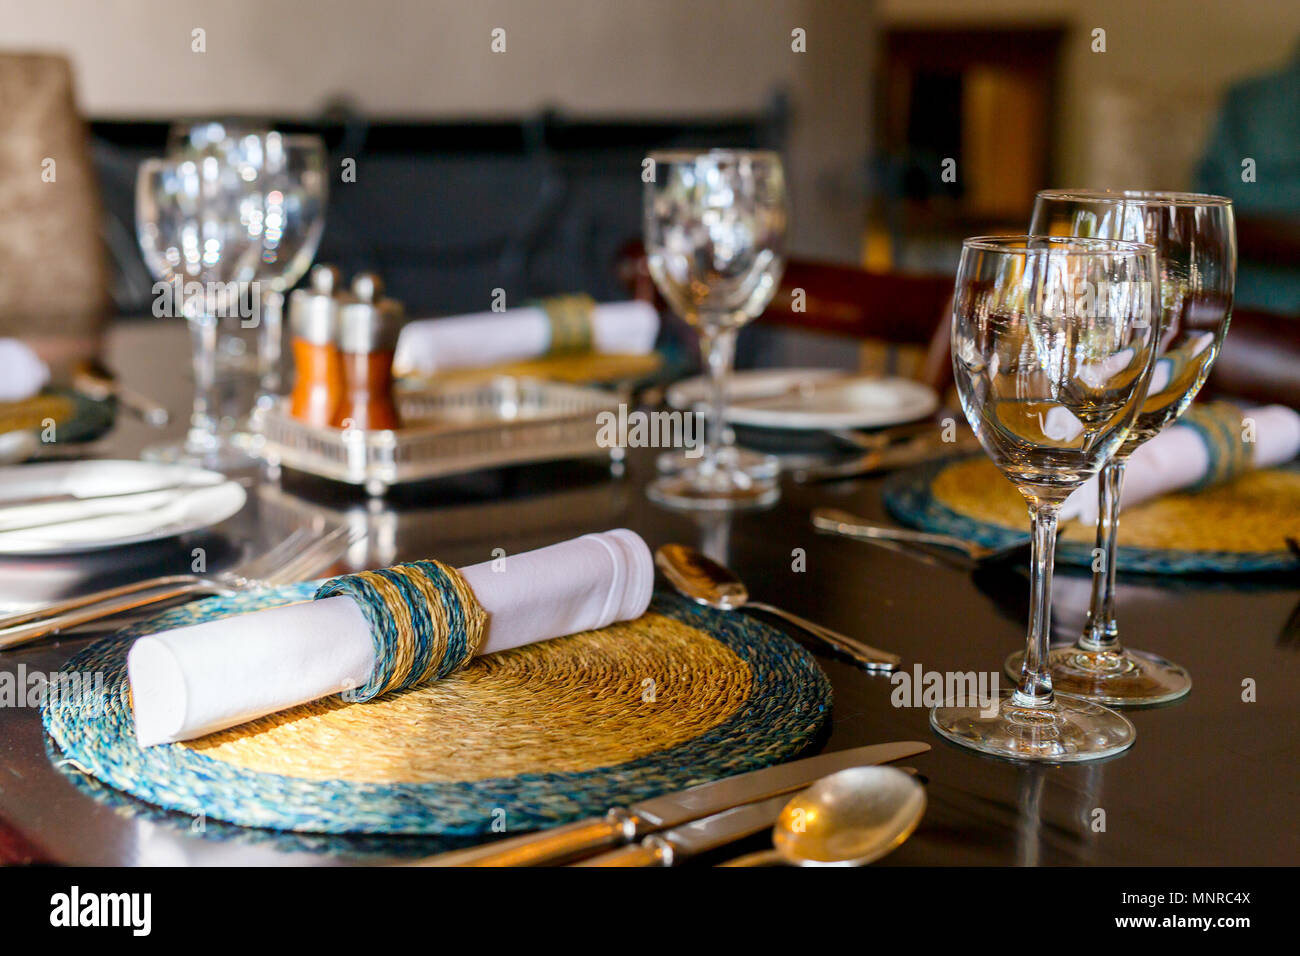 Table setting in a restaurant for romantic lunch or dinner - Stock Image